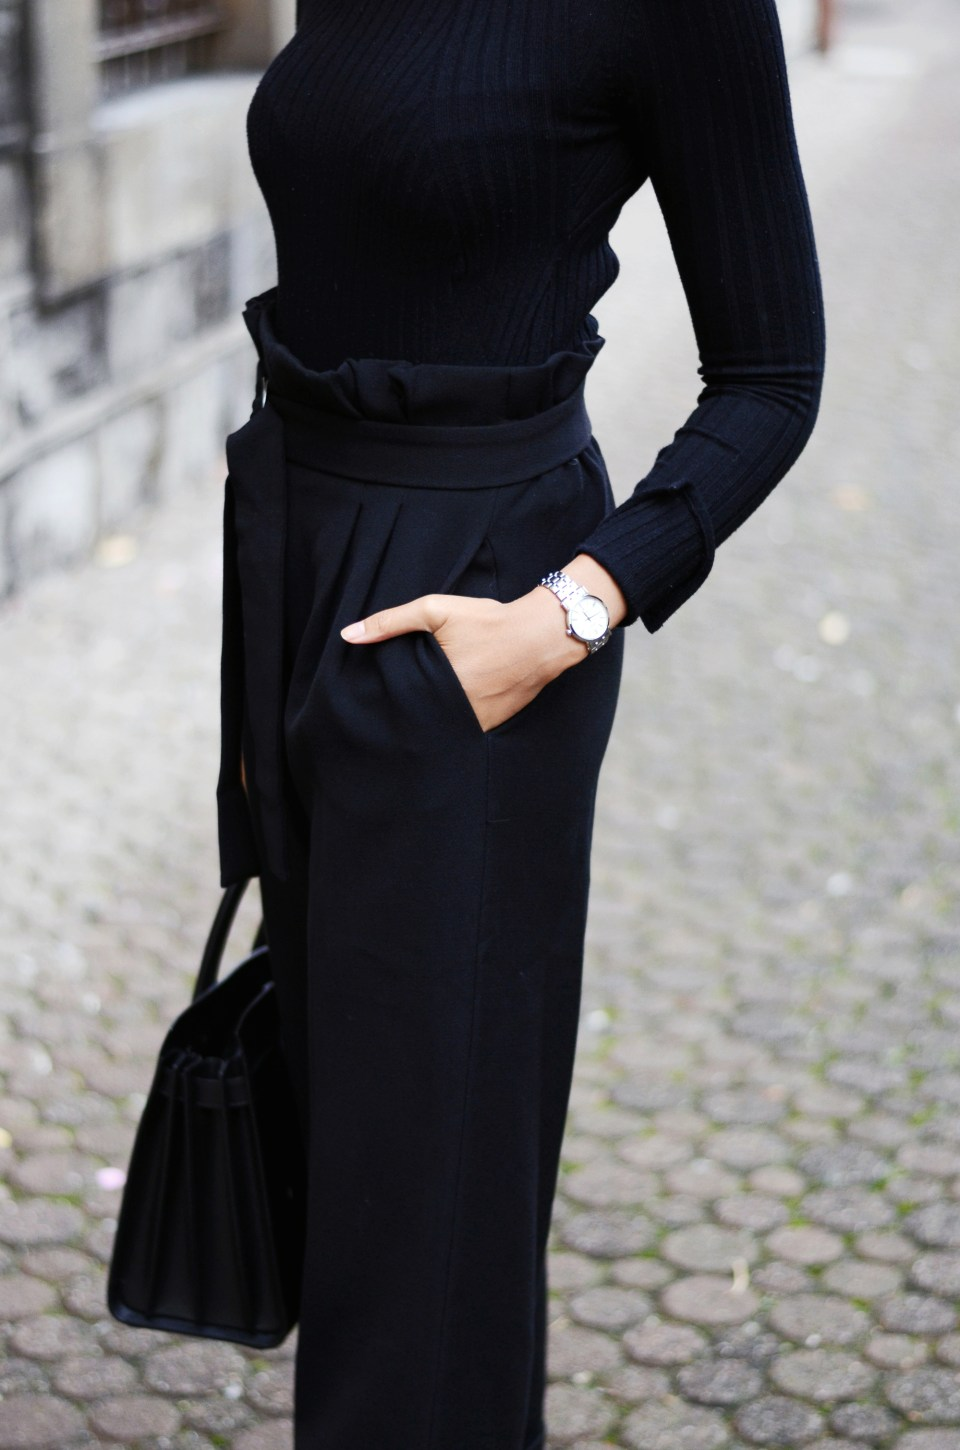 mercredie-blog-mode-geneve-suisse-fashion-blogger-all-black-outfit-chic-saint-laurent-sac-de-jour-black-matte-seiko-ultra-thin-ladies-quartz-sxb429p1-look